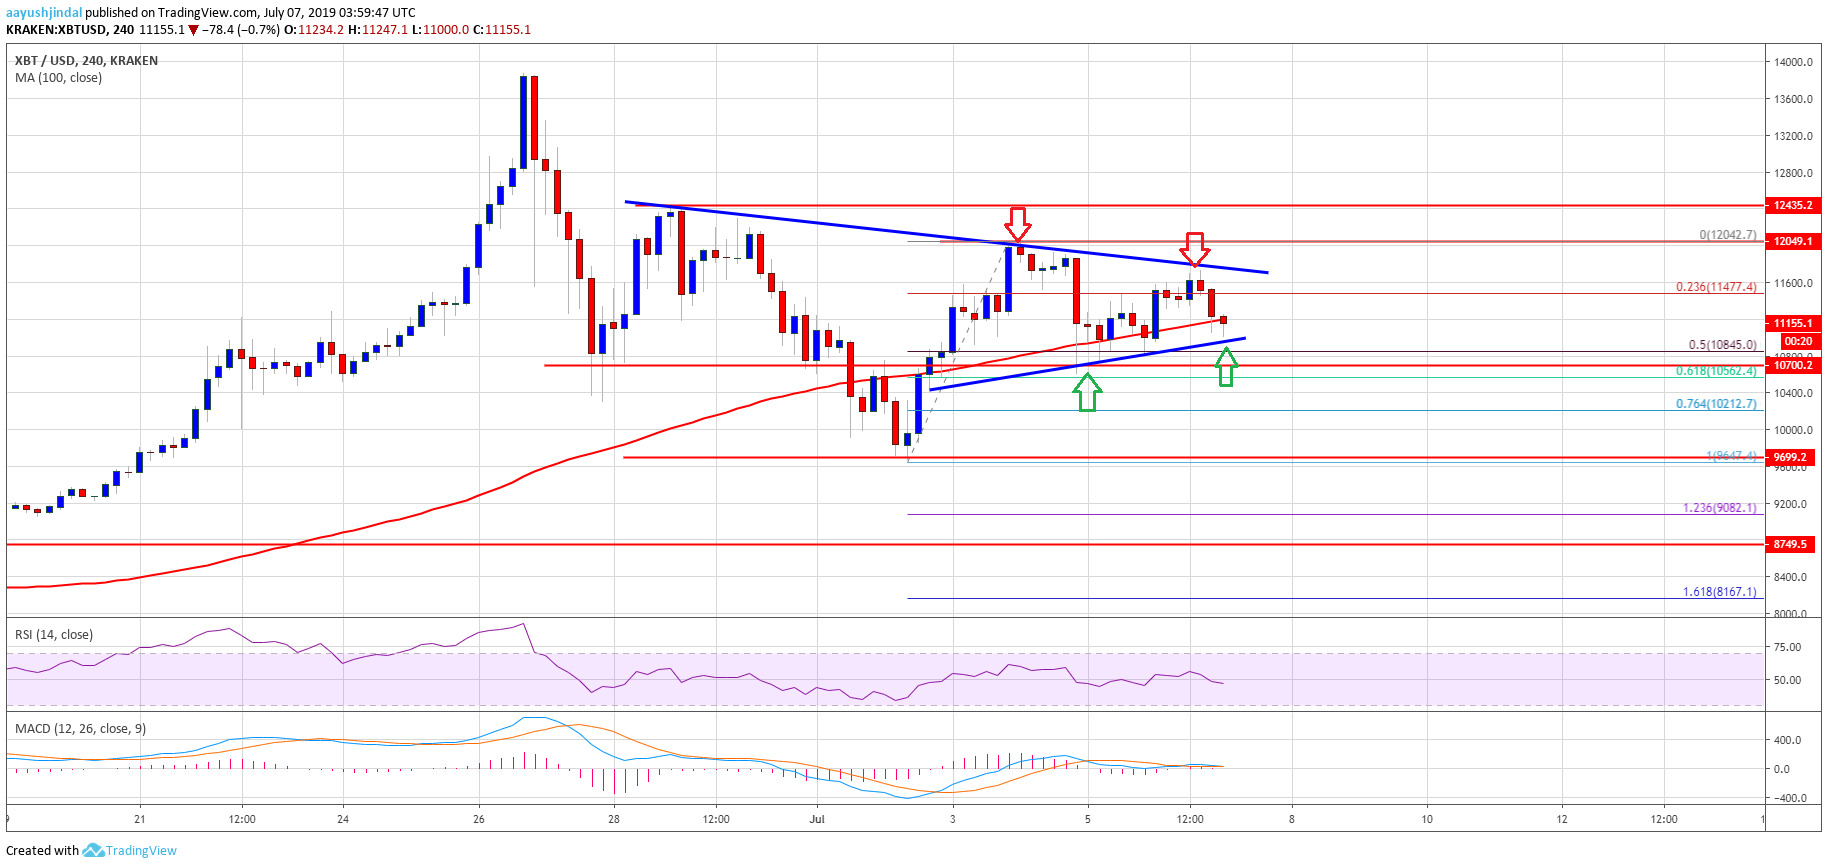 Bitcoin (BTC) Price Trading Near Make-or-Break Levels